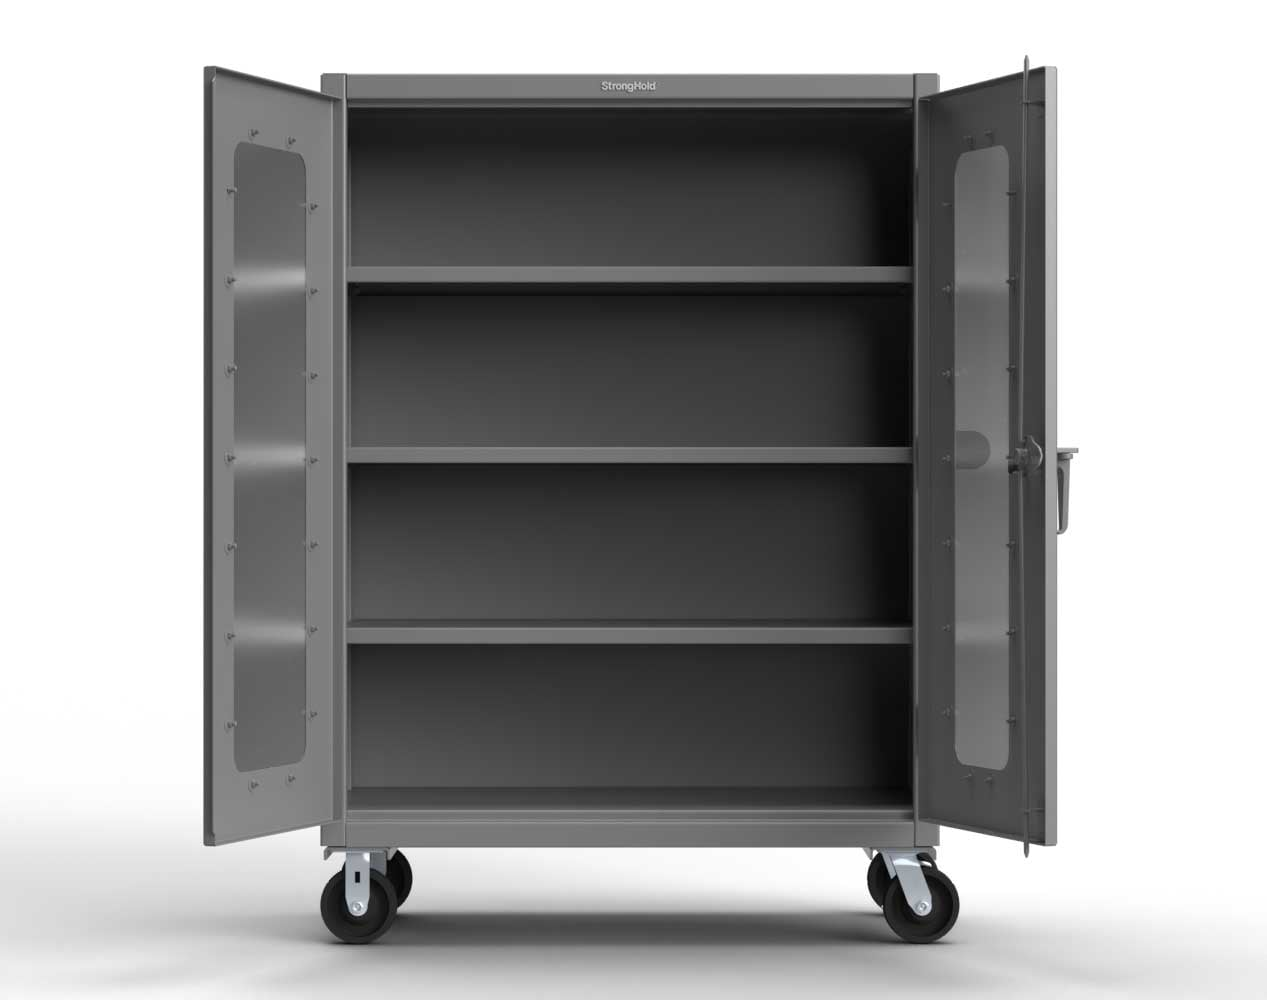 Heavy Duty 14 GA Clear View Mobile Medical Cabinet with Cylinder Lock – 48 In. W x 24 In. D x 68 In. H